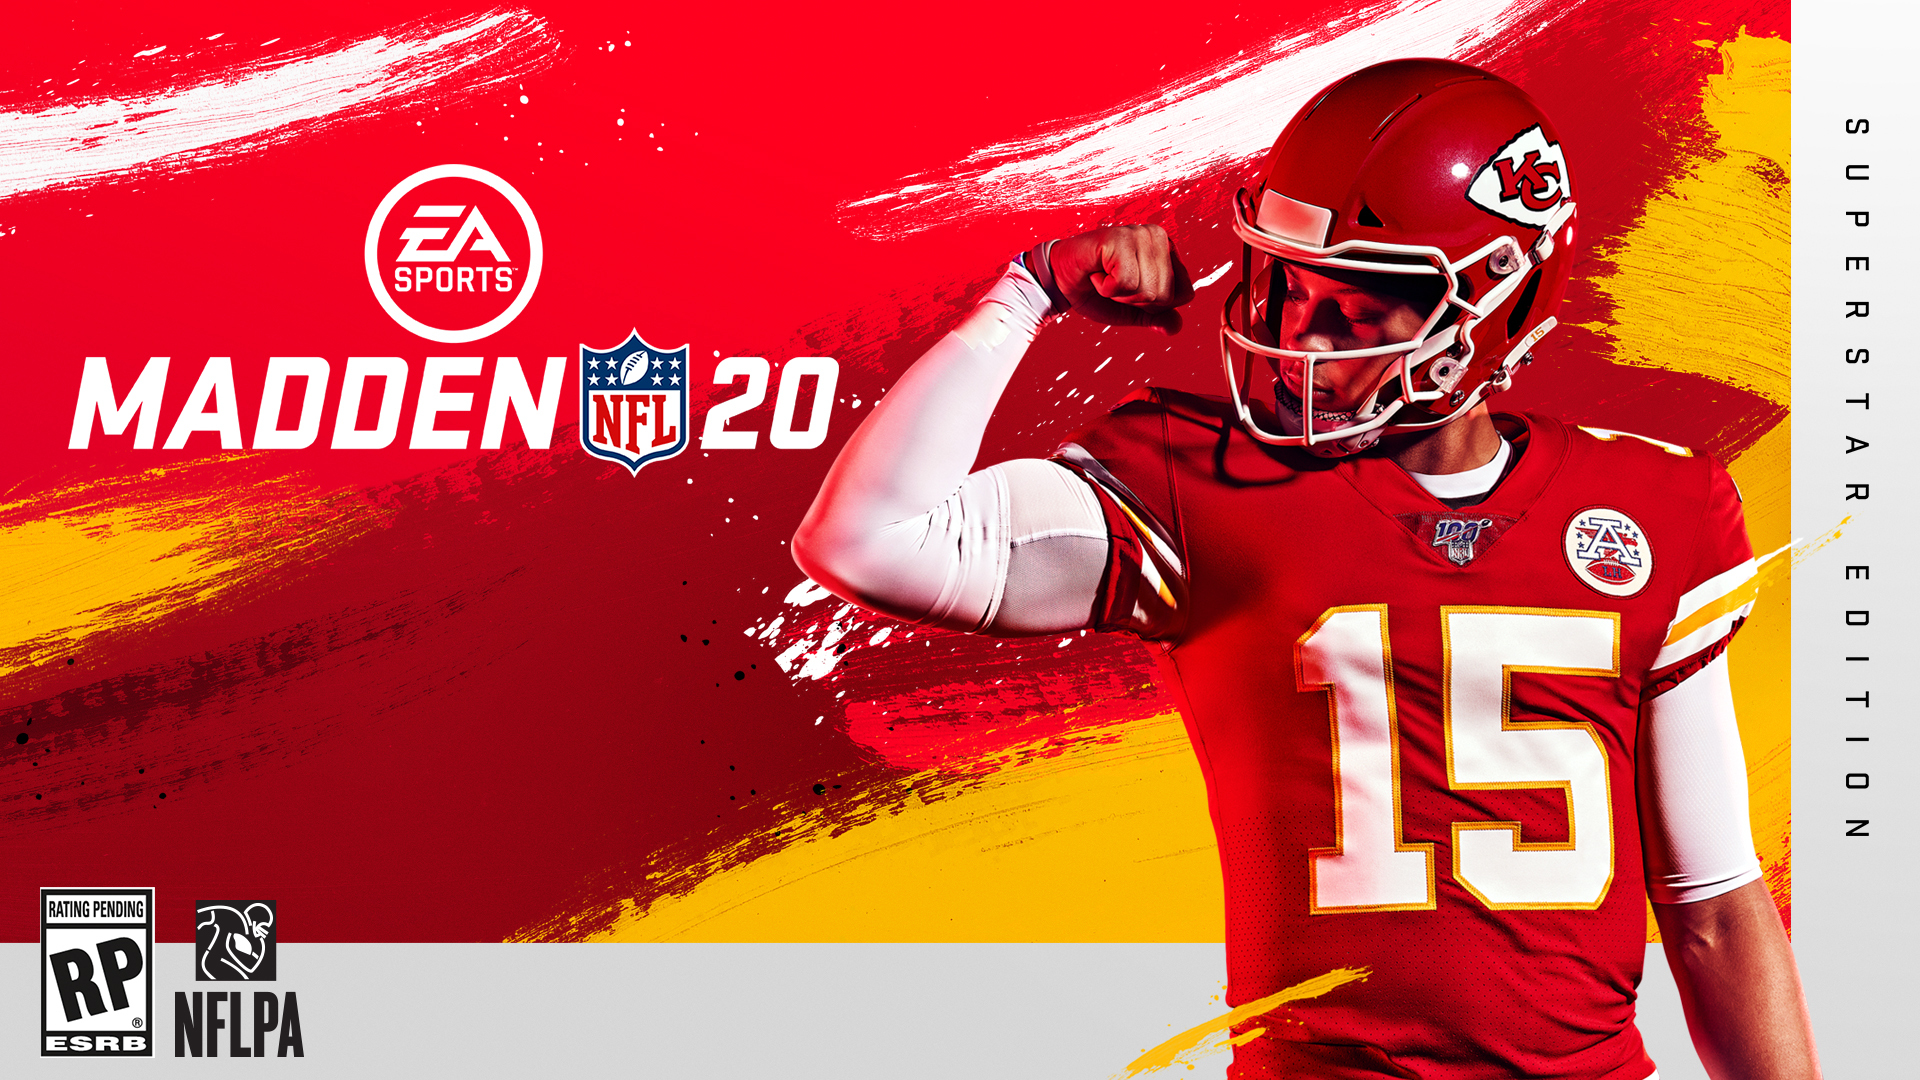 NFL Madden 20 Game Release Date news